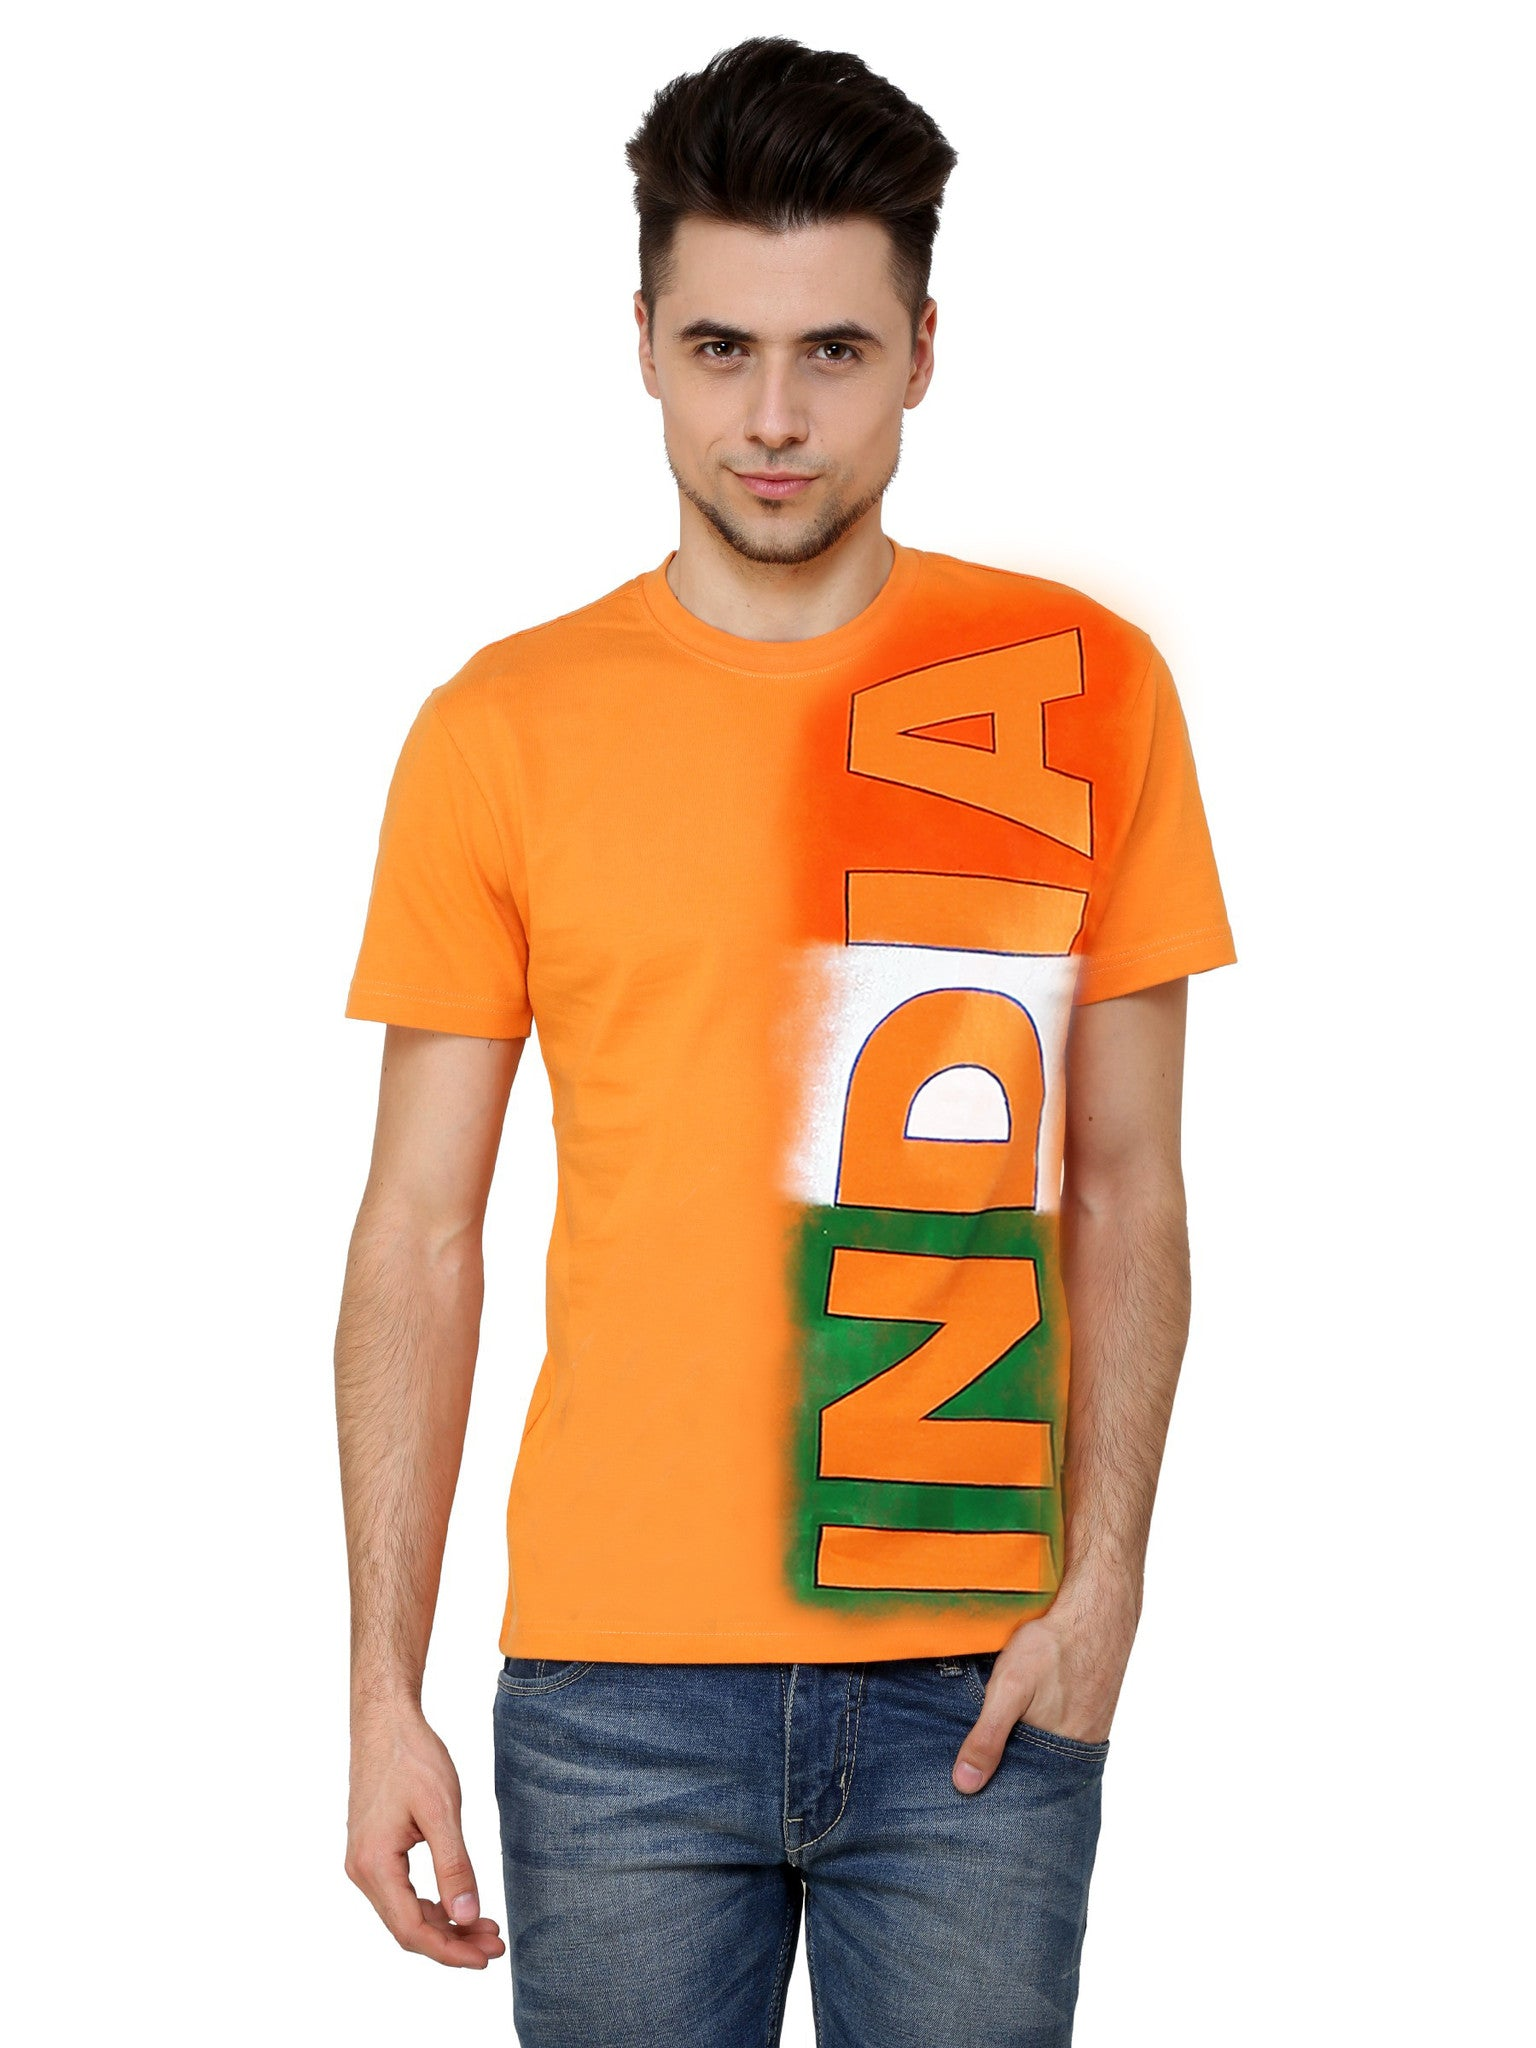 Hand-painted Indian Effect T-shirt - Rang Rage  - 1